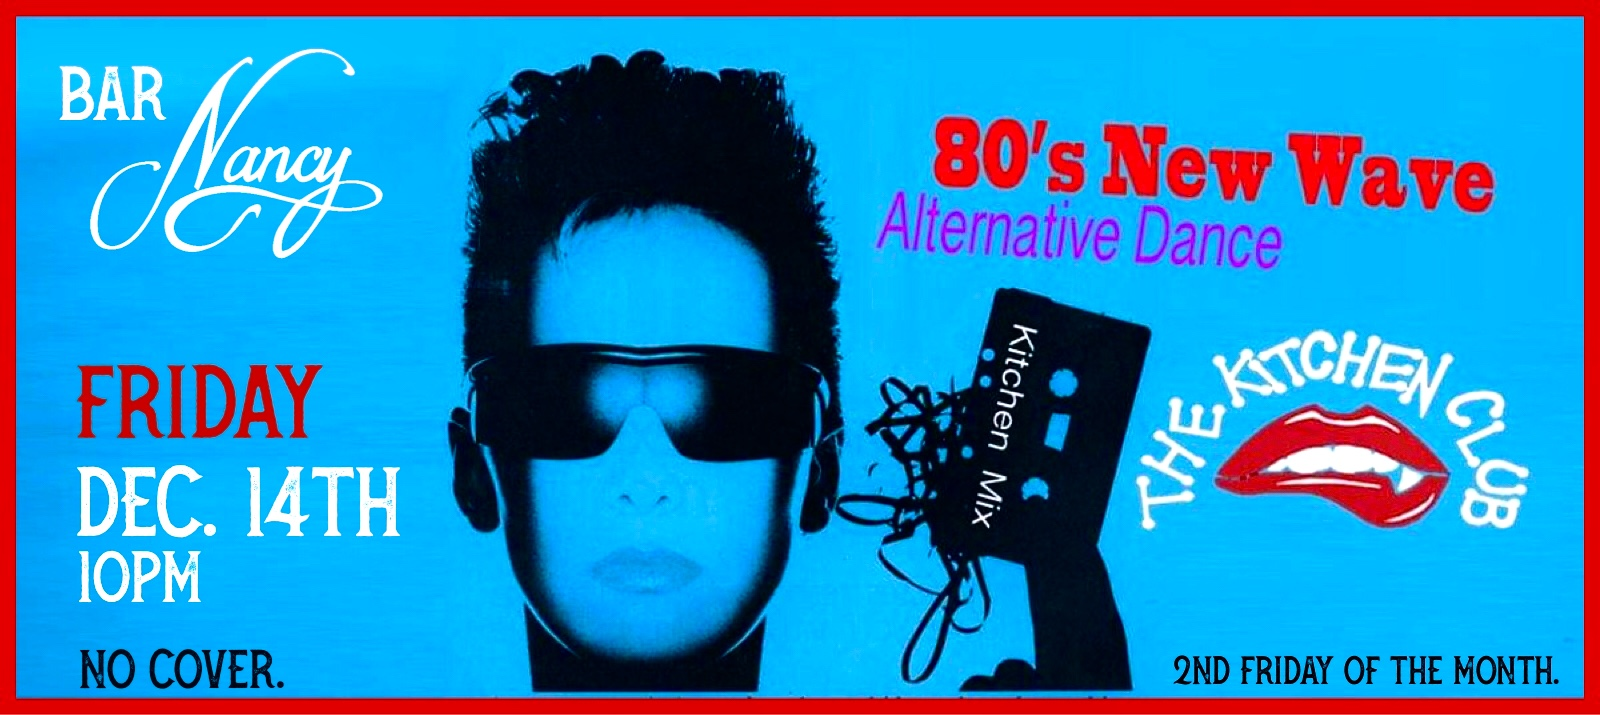 80'S NEW WAVE ALTERNATIVE DANCE - THE KITCHEN CLUB - FRIDAY DEC 14 - NO COVER - 10PM